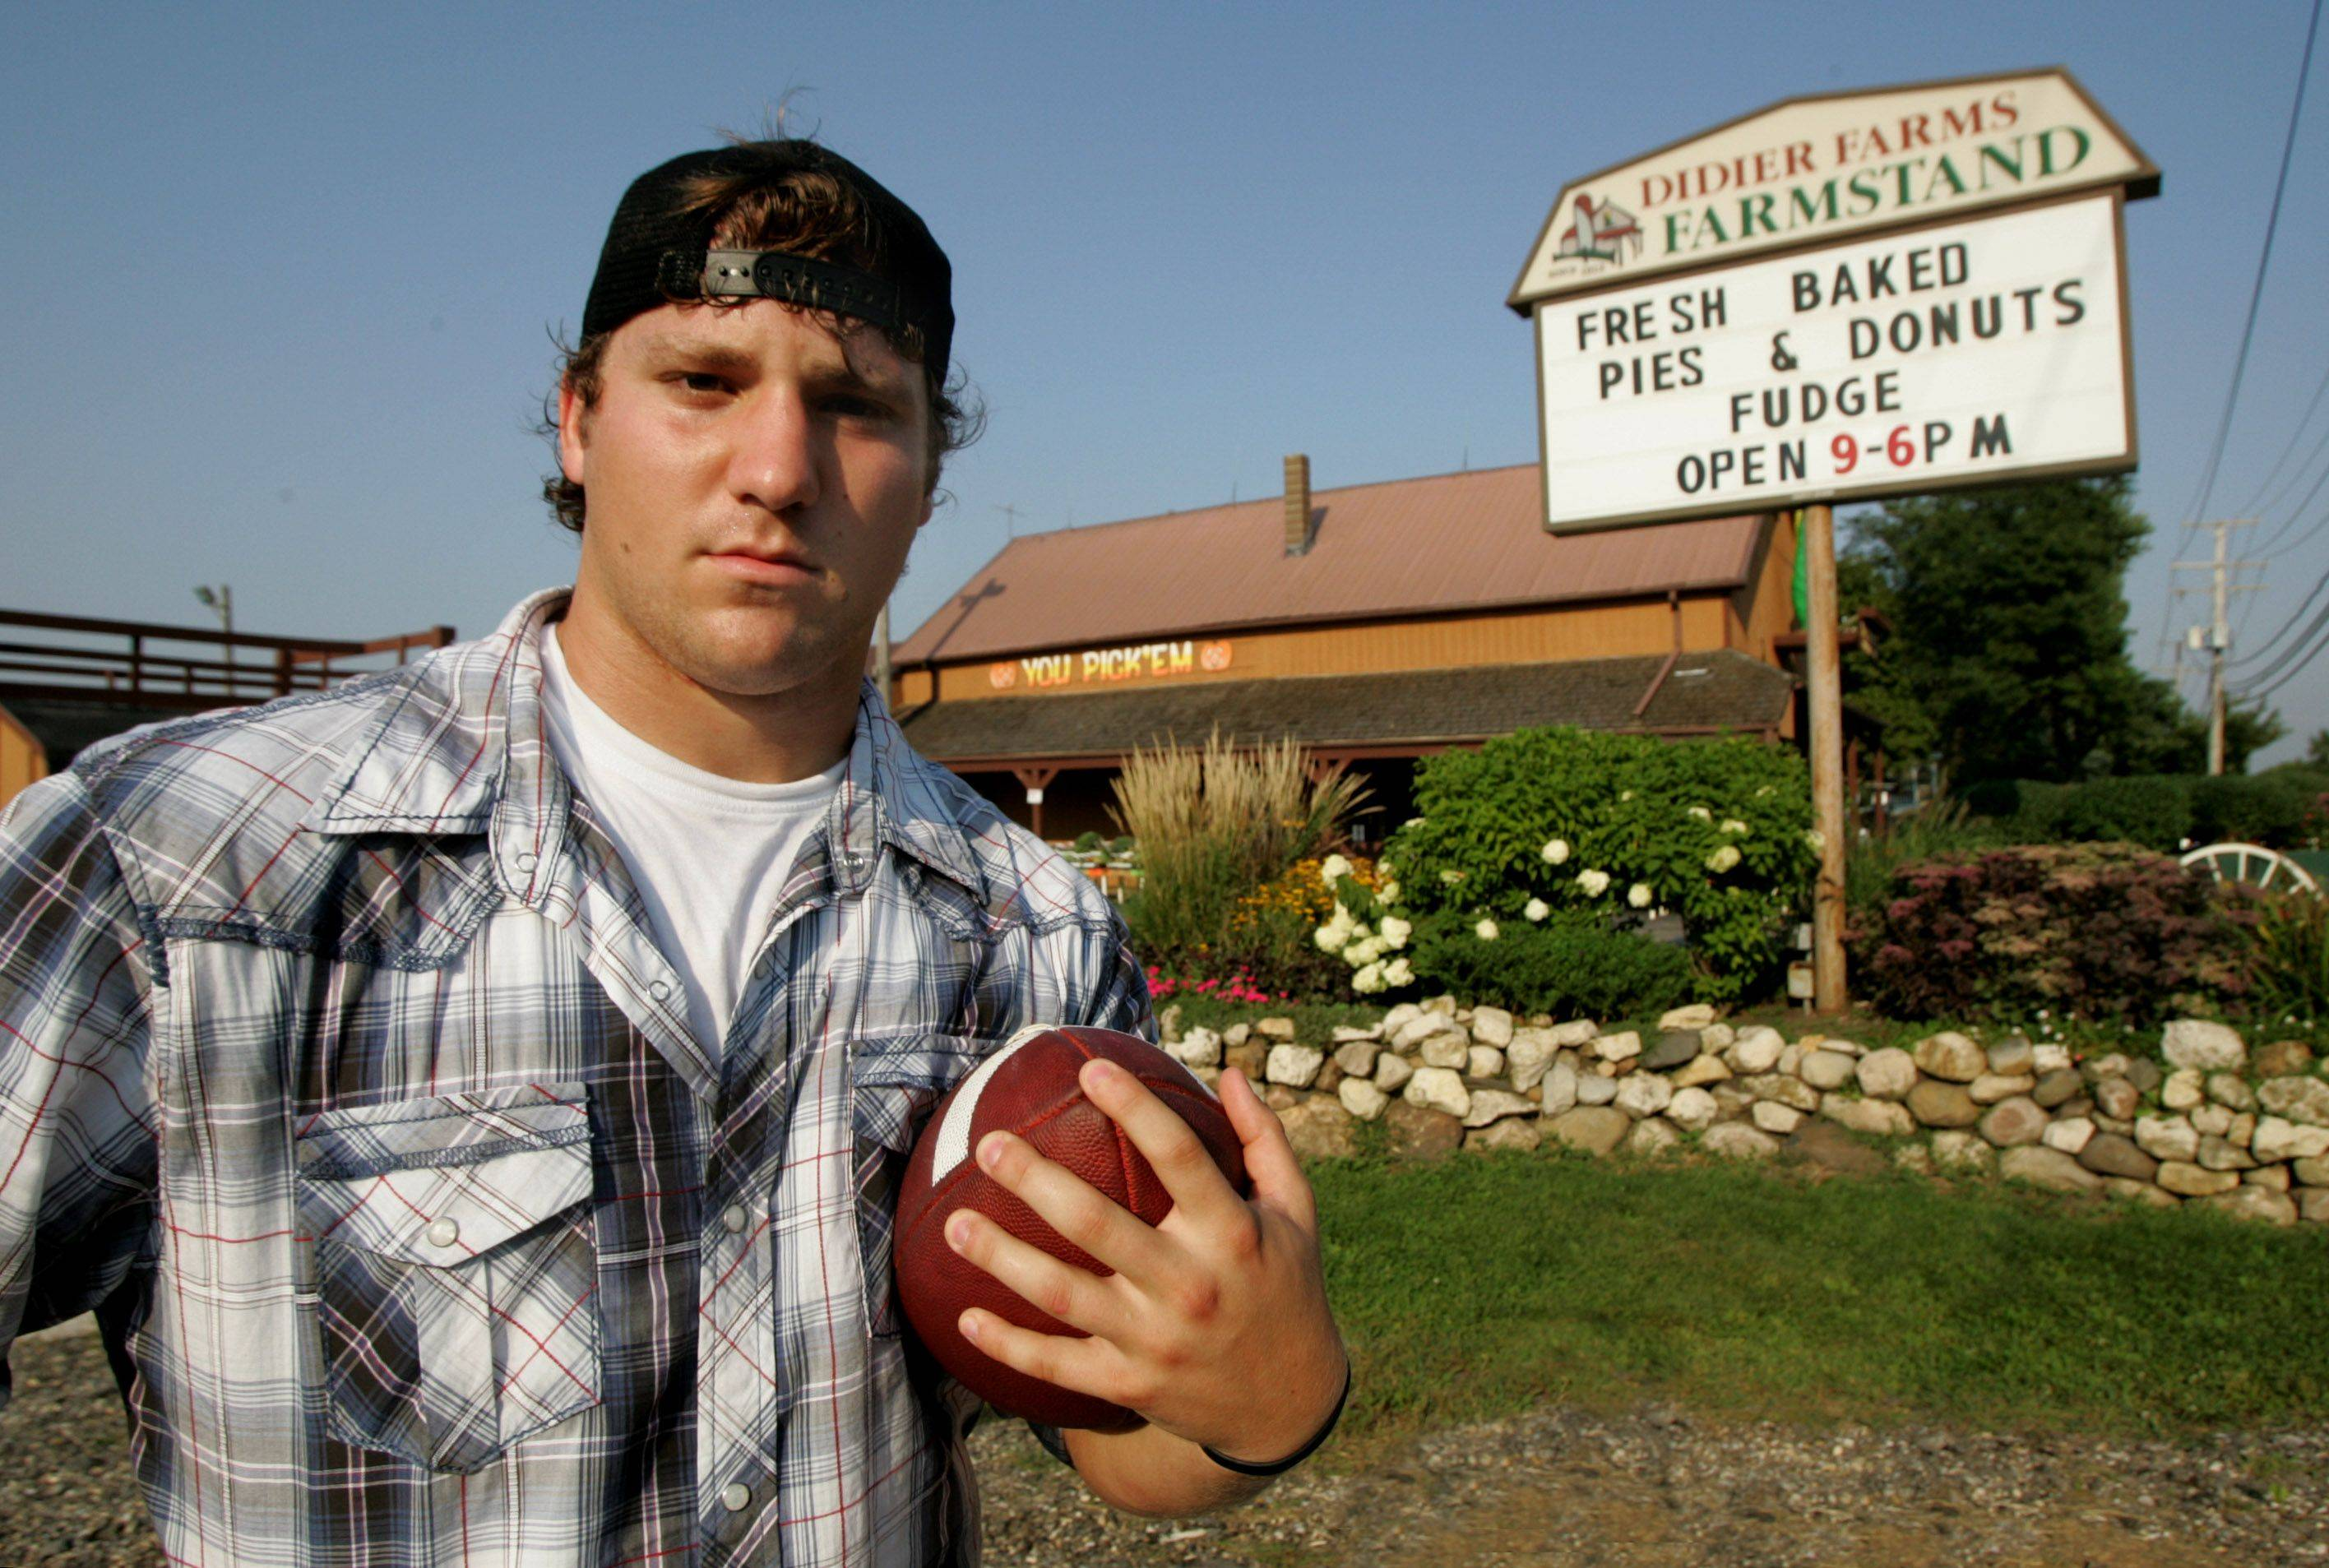 Gilbert R. Boucher II/gboucher@dailyherald.com Vernon Hills High School football player Wayne Didier has roots in farming where his family owns Didier Farms in Lincolnshire.